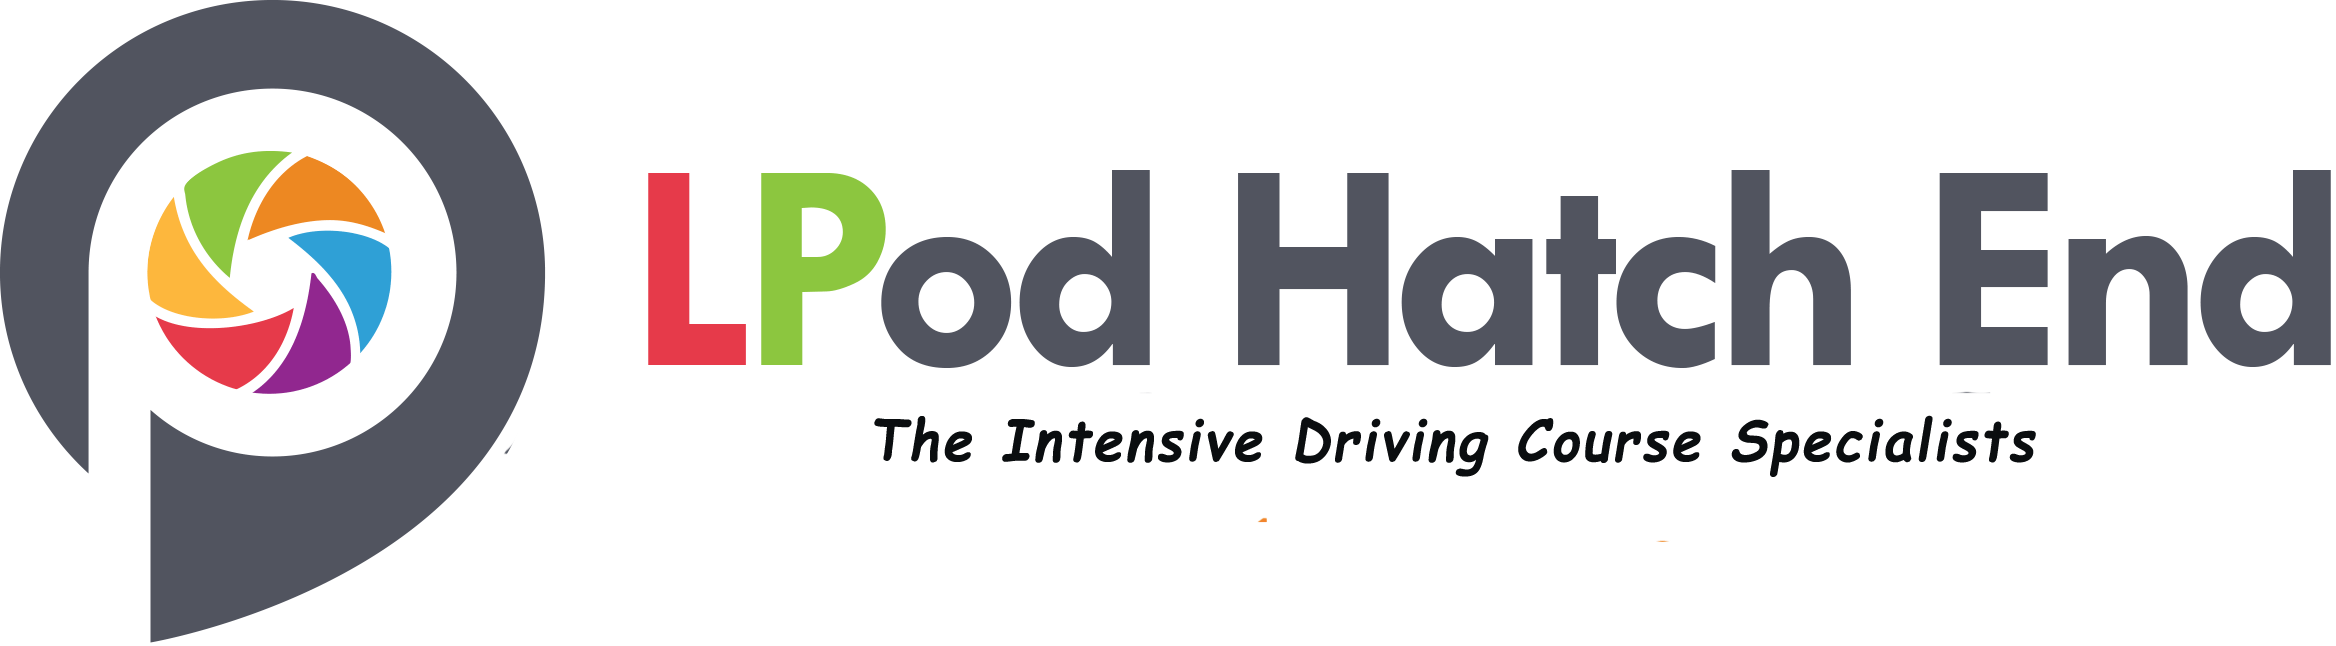 intensive driving courses hatch end , one week driving courses hatch end, fast pass driving courses hatch end , intensive driving course hatch end , driving school hatch end , automatic courses hatch end , automatic lessons hatch end , driving lessons hatch end ,